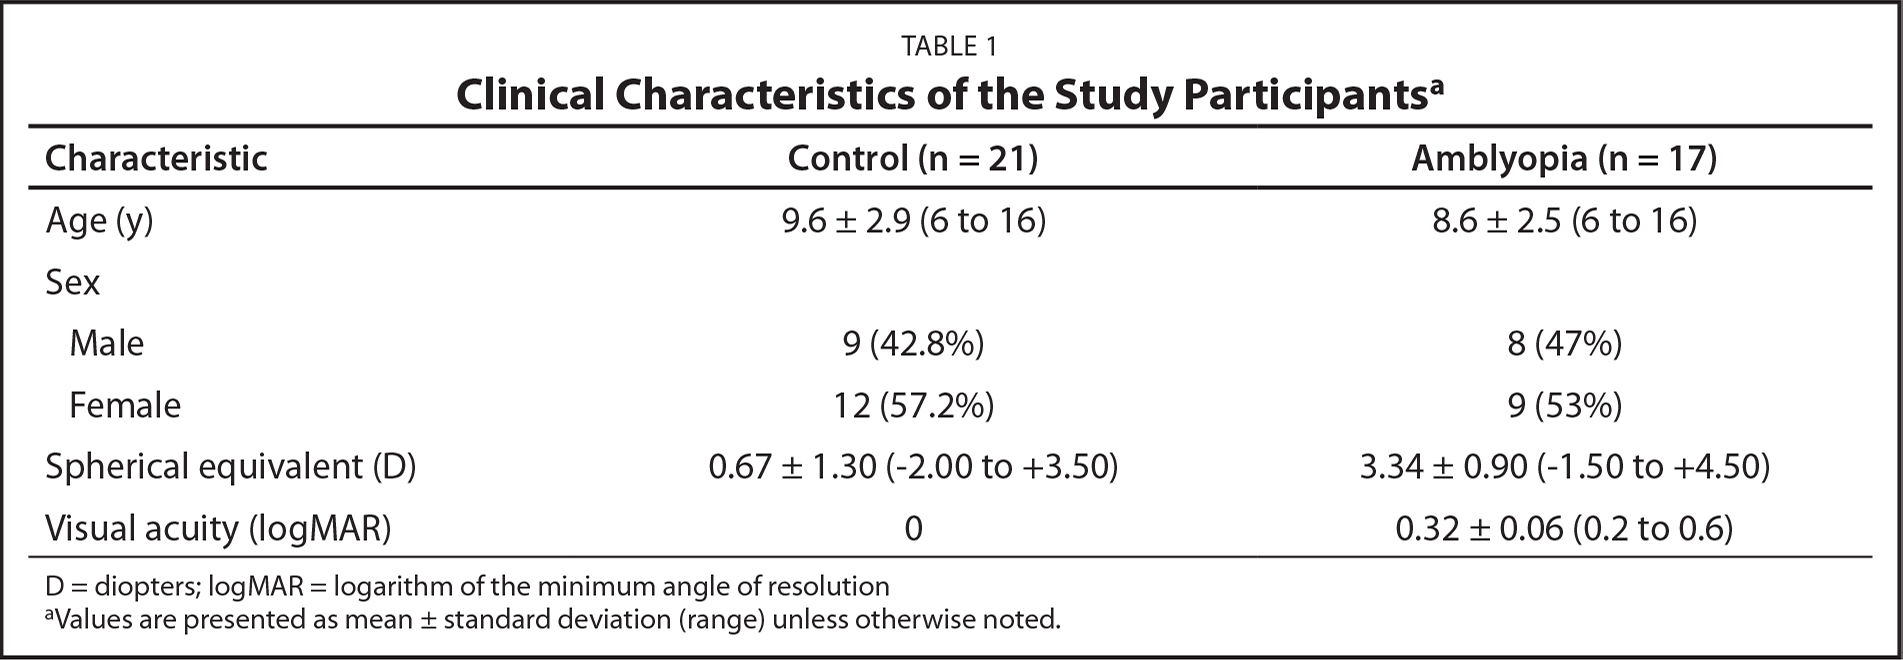 Clinical Characteristics of the Study Participantsa